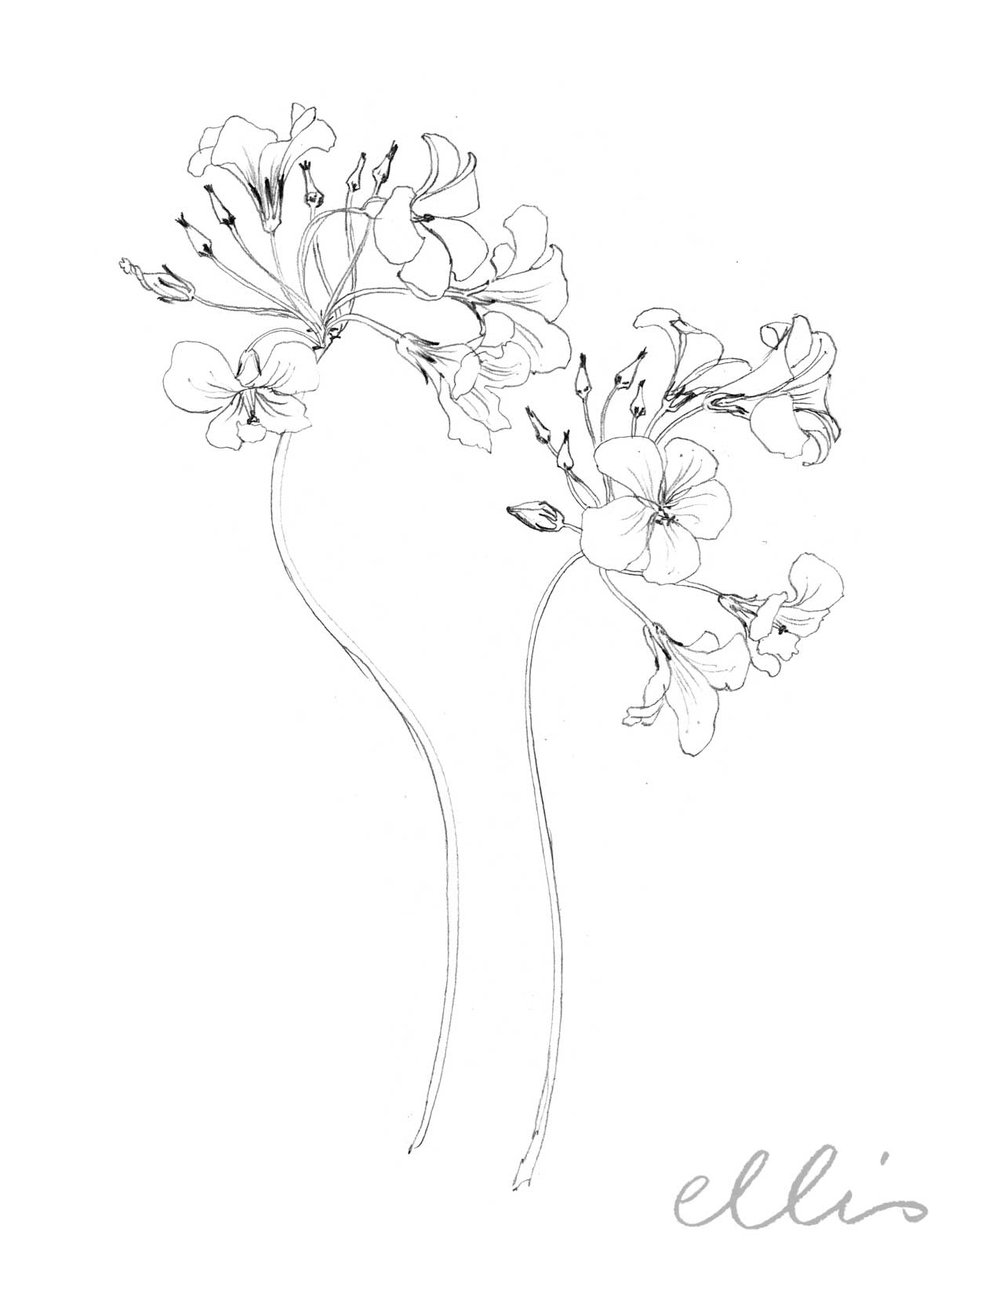 Erin Ellis_100 days project botanical drawings_2013-86.jpg